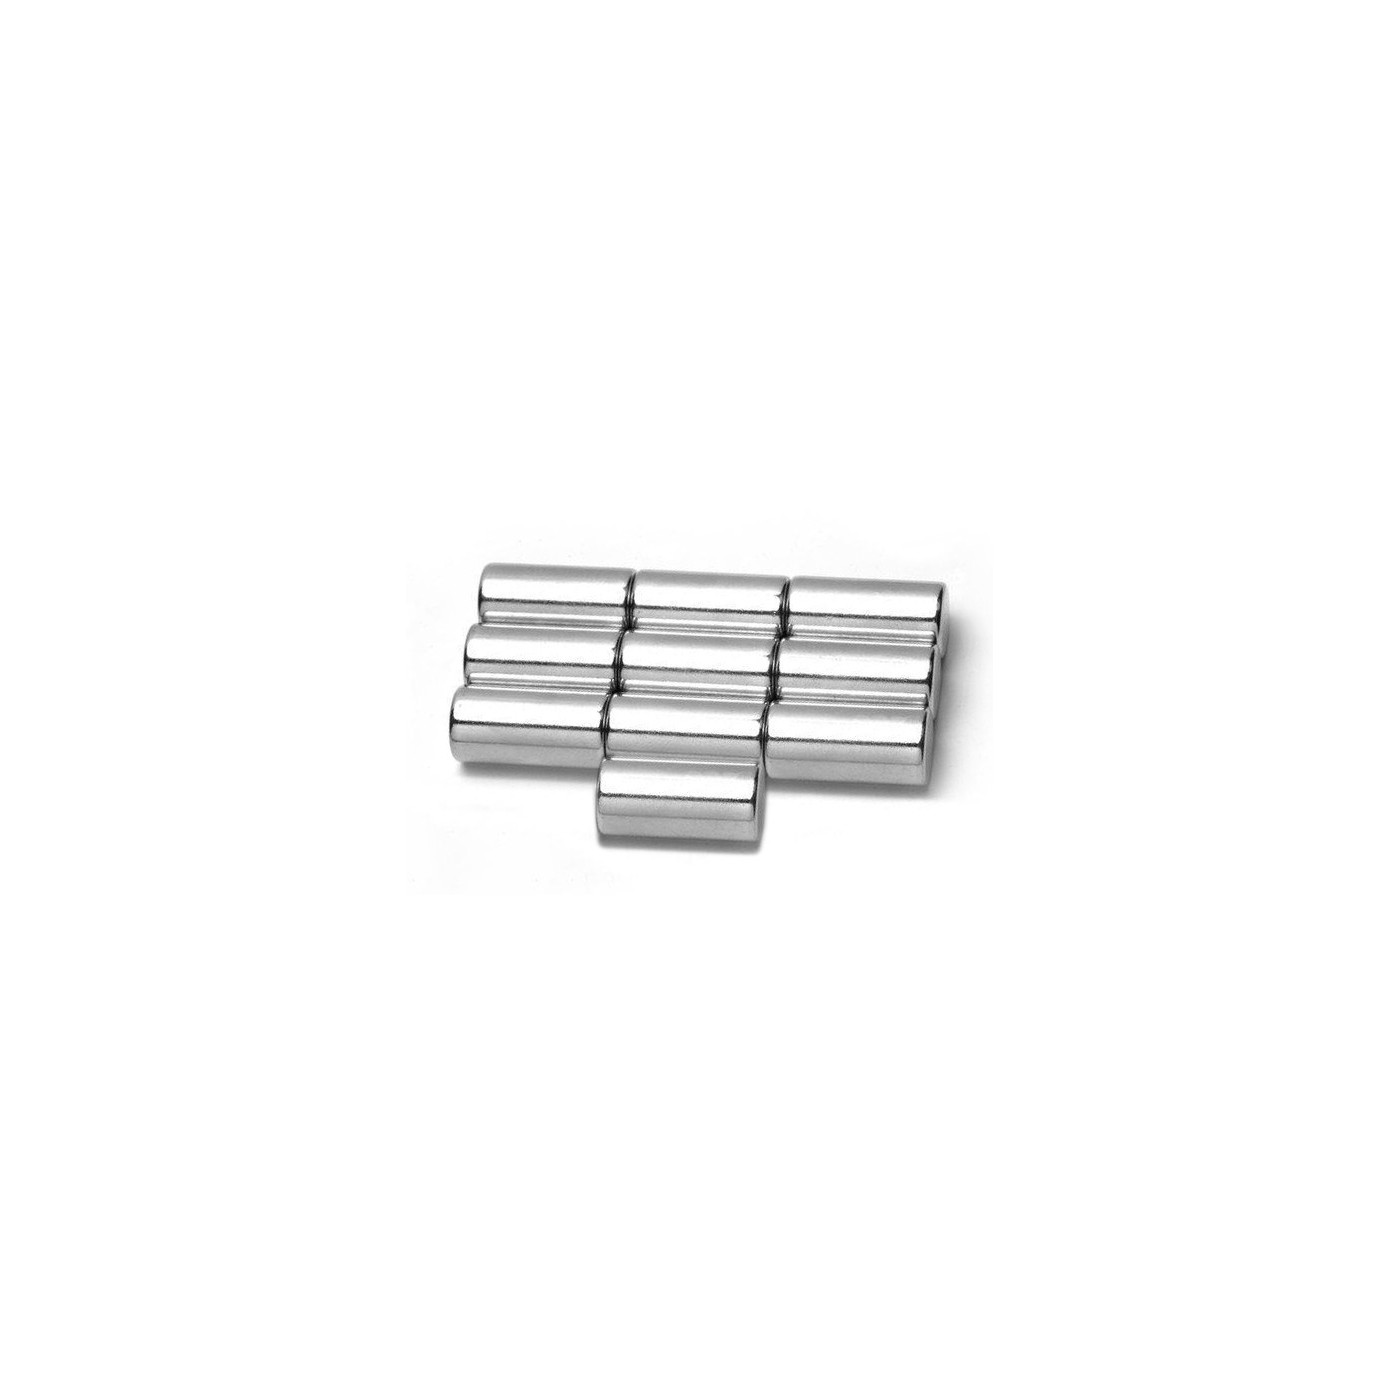 Set of 10 strong magnets 10x15 mm  - 1